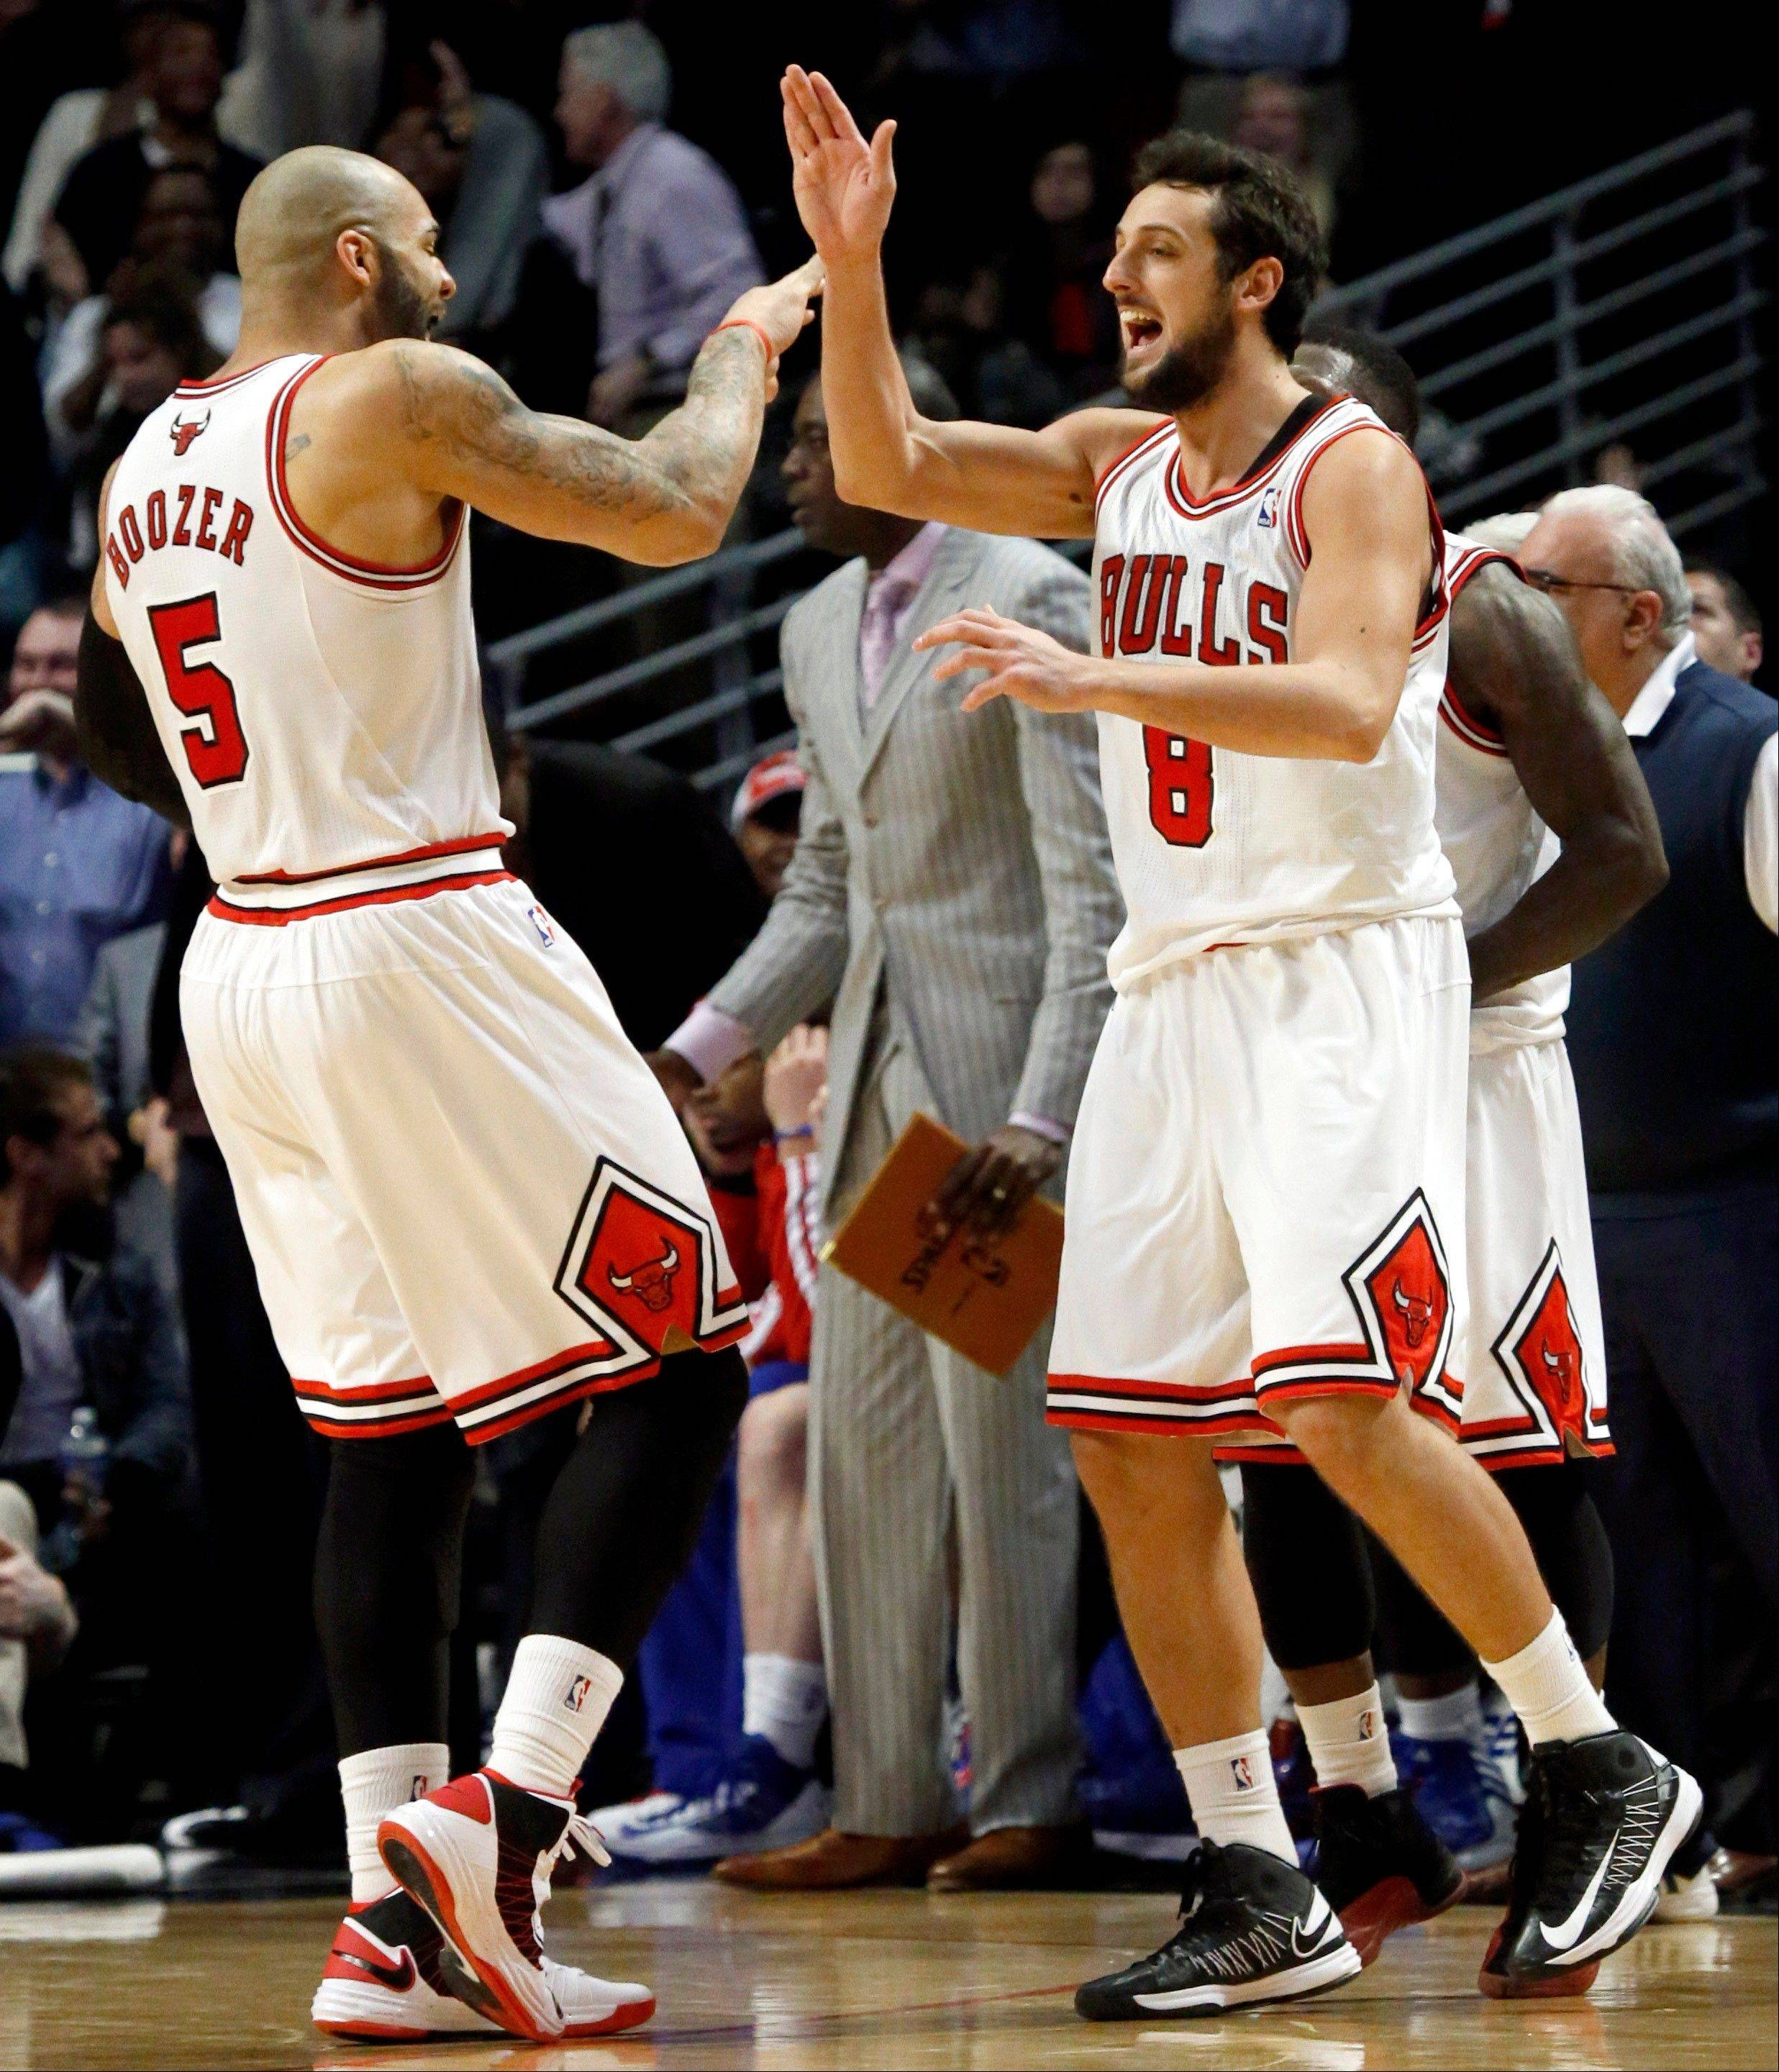 Chicago Bulls guard Marco Belinelli (8) celebrates with Carlos Boozer after making the winning basket during the second half of an NBA basketball game Wednesday against the Detroit Pistons in Chicago. The Bulls won 85-82.